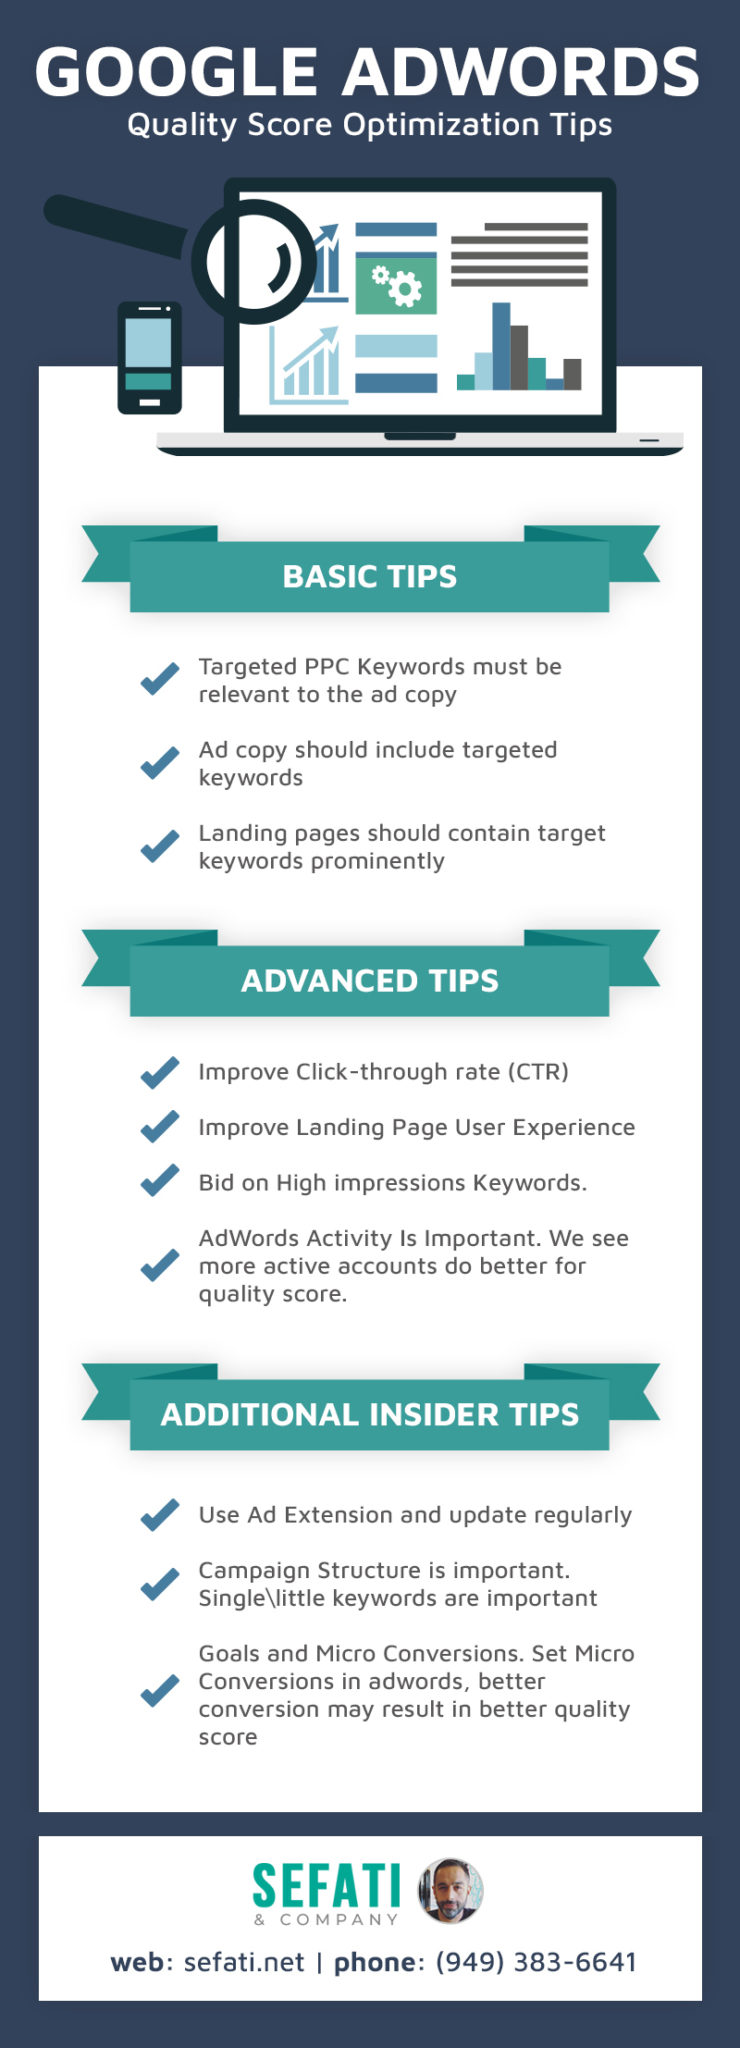 Google AdWords Quality Score Optimization Tips